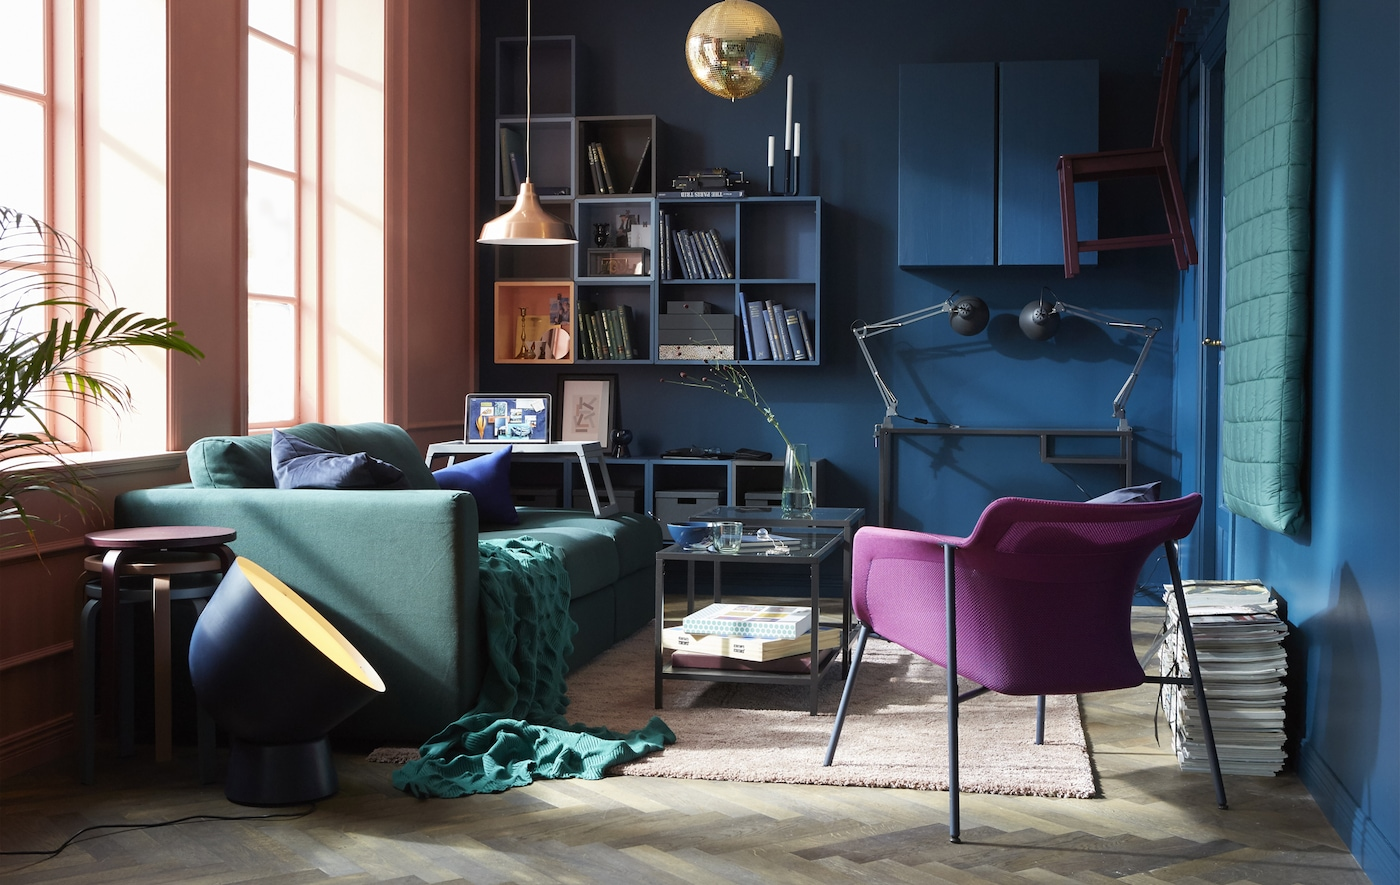 A living room setup can be comfortable, flexible and practical. This room uses modern, darker shades of blue and green. VIMLE 3-seat sofa from IKEA has an open end with storage in its footstool and comes in a dark green Gunnared polyster cover.